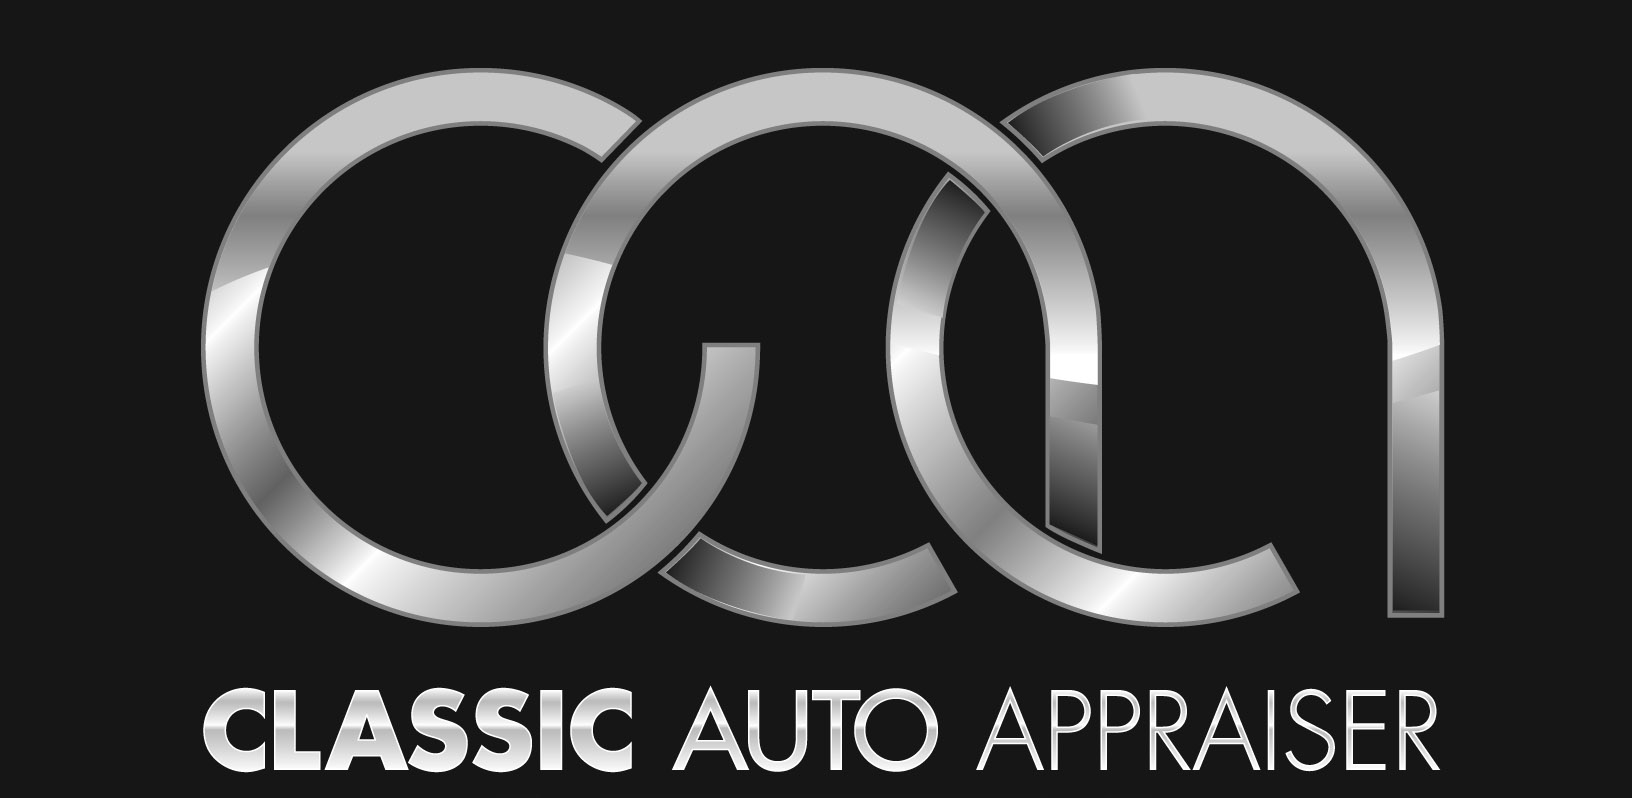 Laurie Wheat | California Central Valley - Classic Auto Appraiser